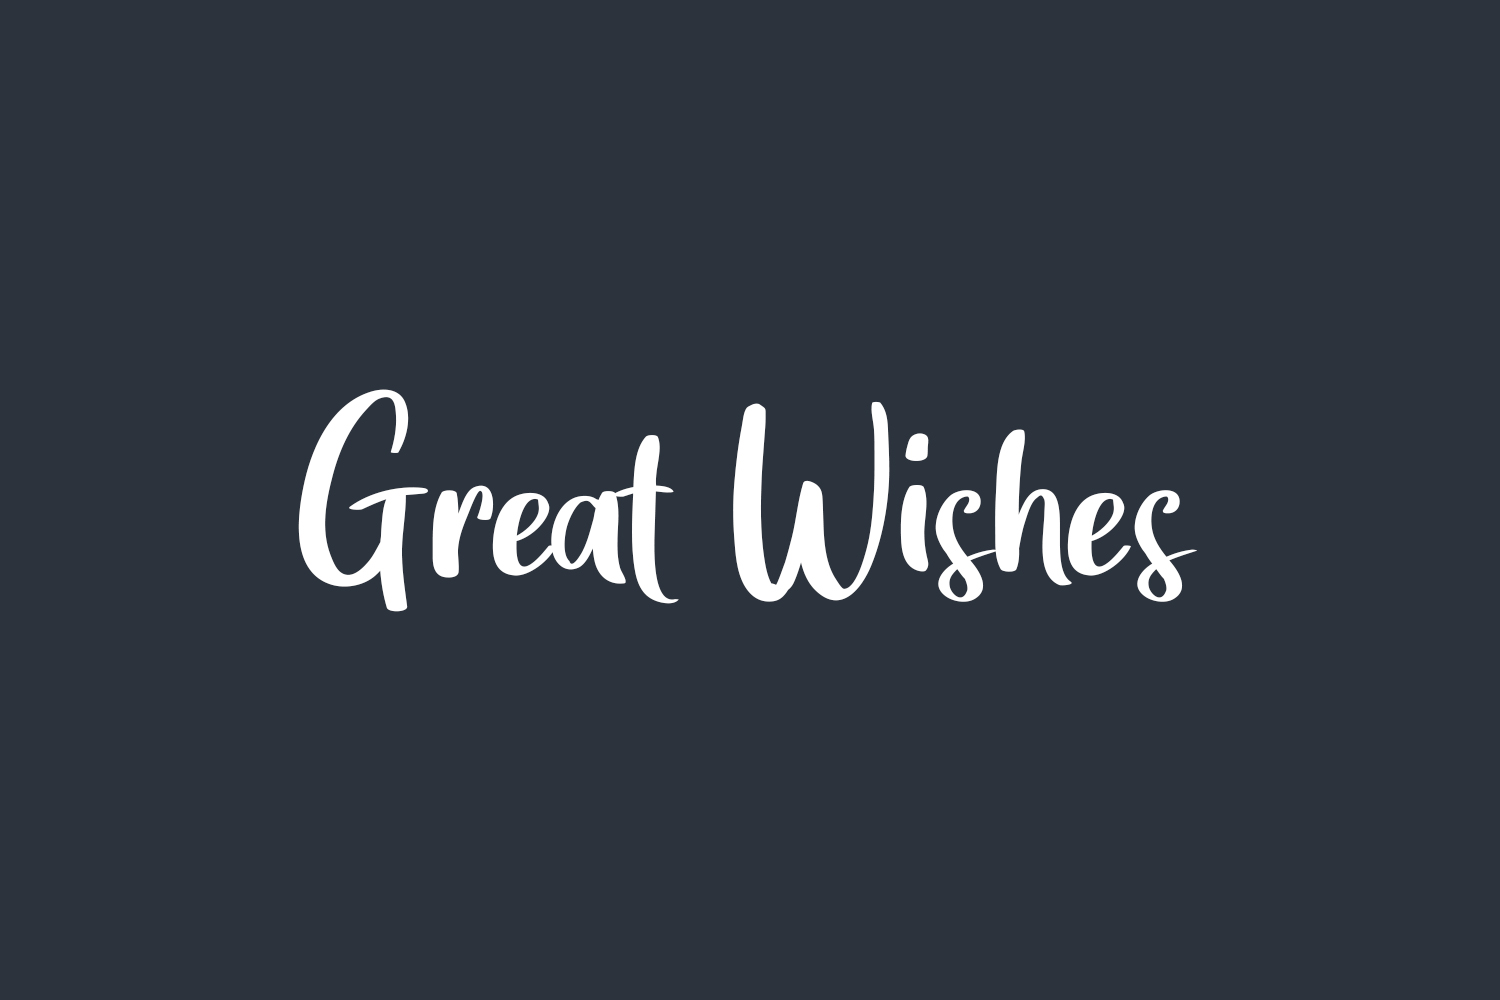 Great Wishes Free Font